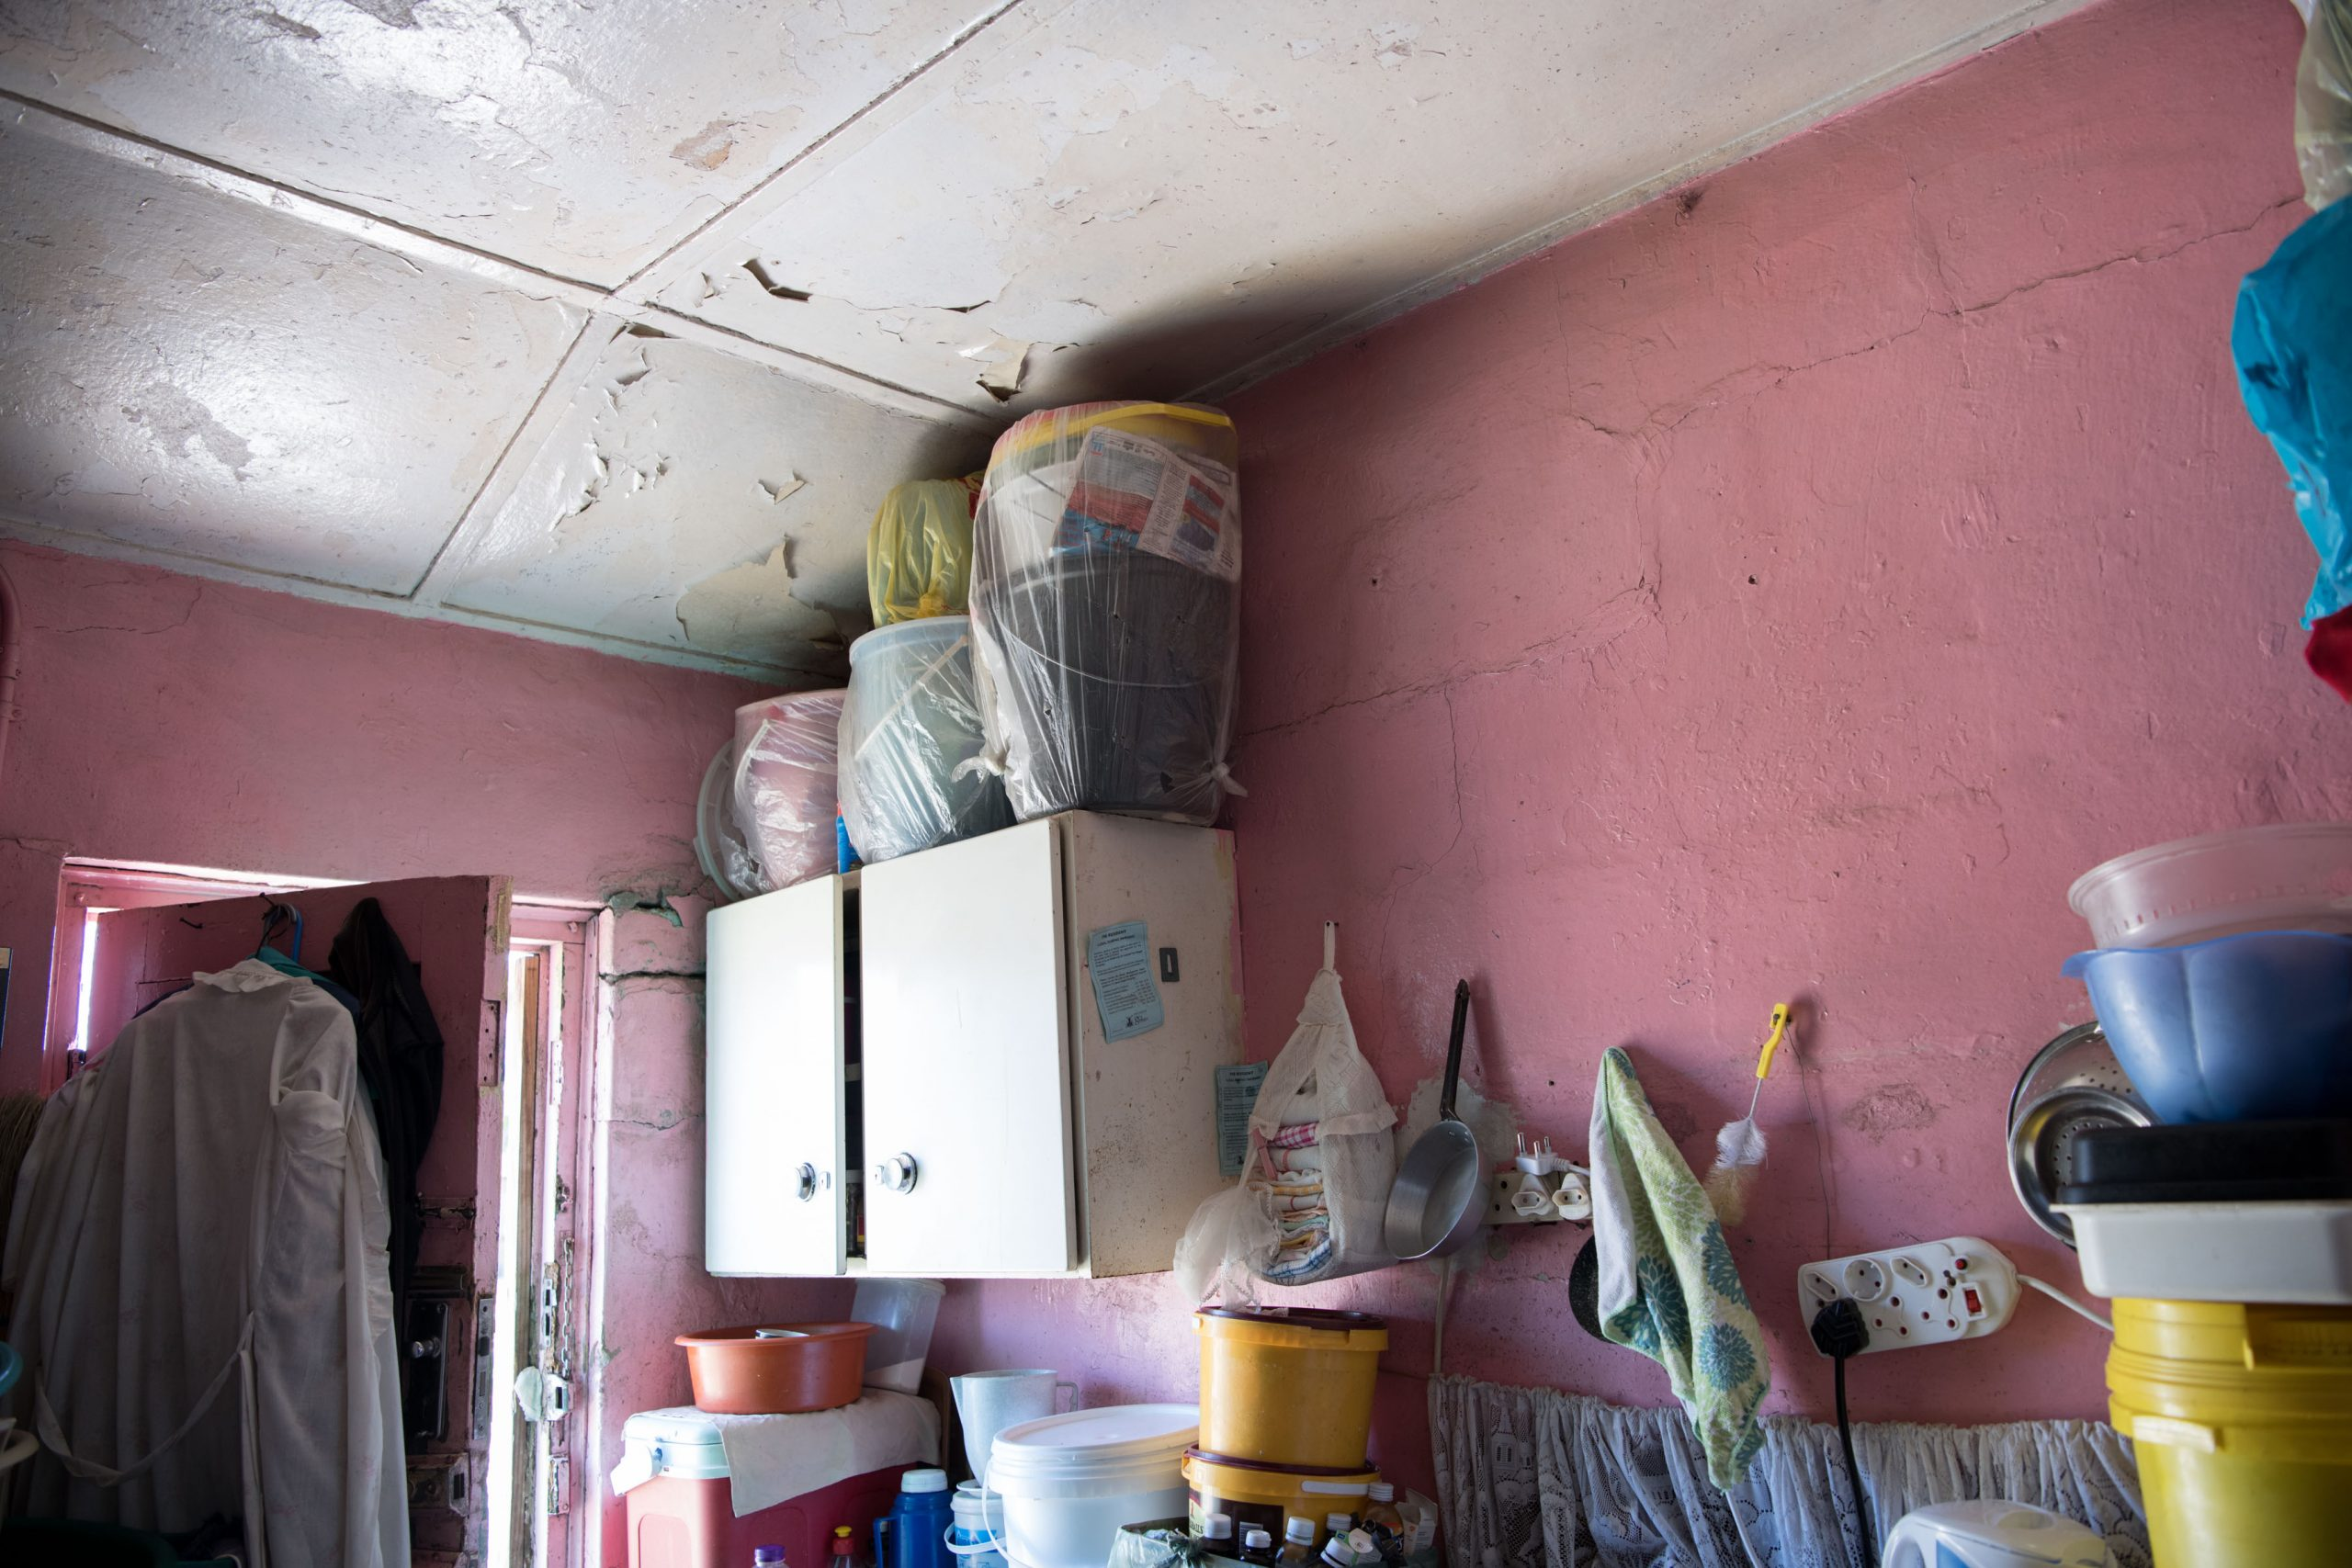 3 February 2020: There are cracks in Vuyiswa Pikoli's wall from when a car crashed into her house in 1988 and her ceiling leaks when it rains.